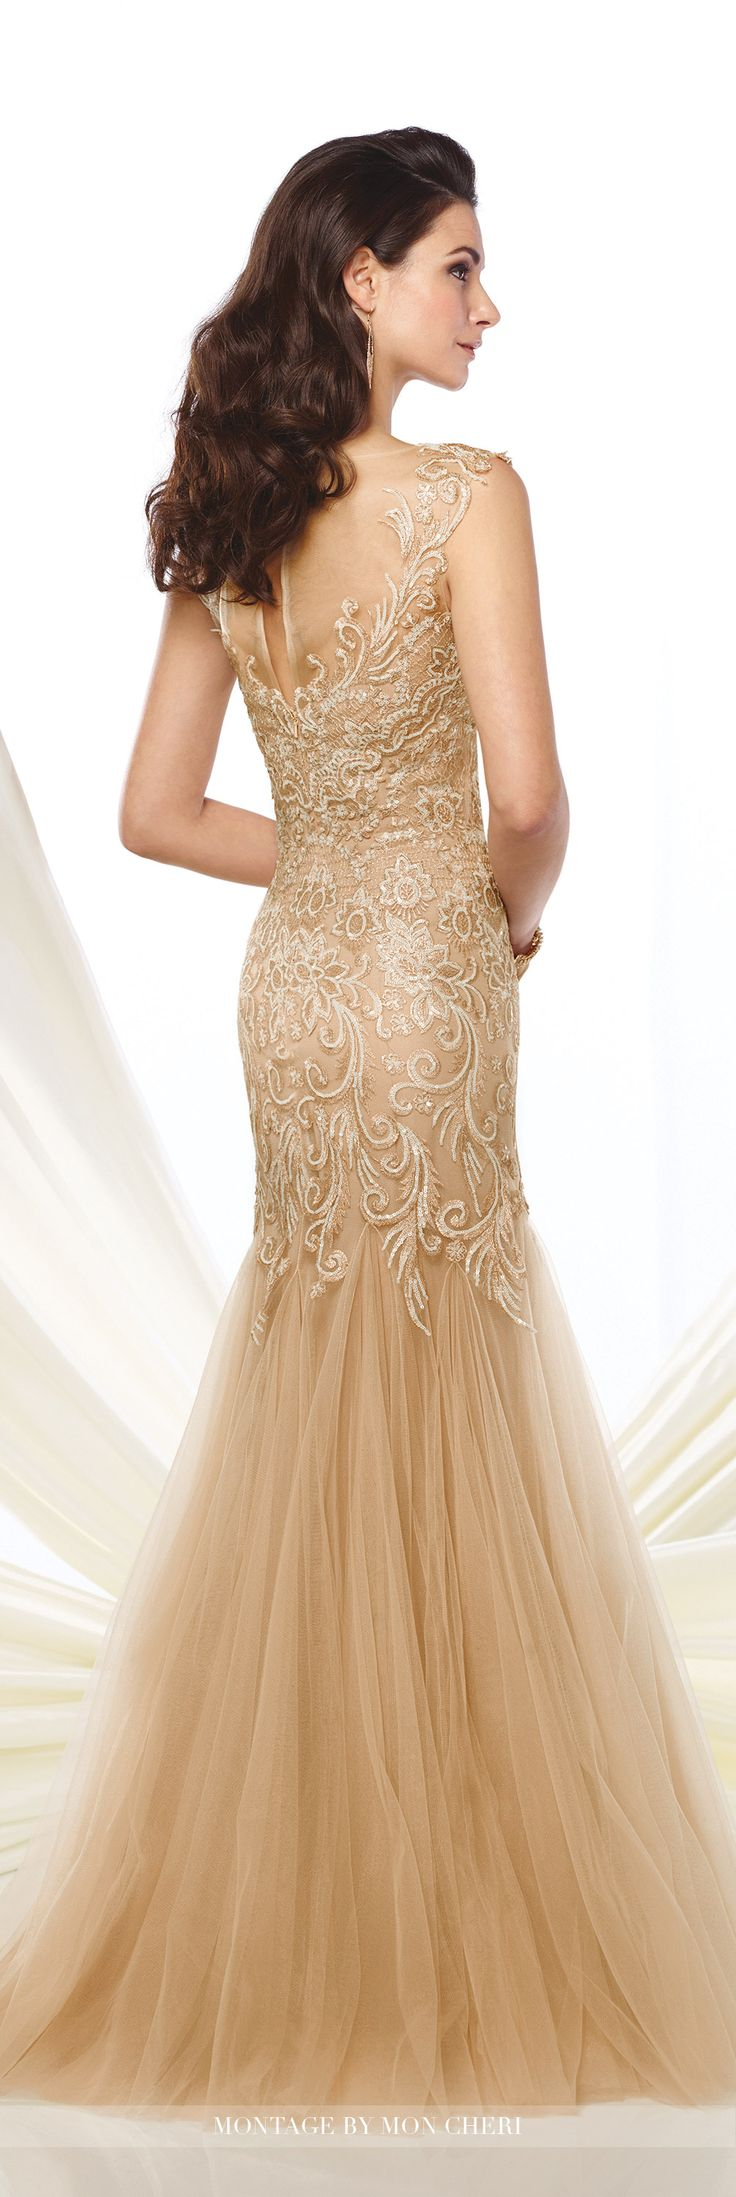 Formal Evening Gowns by Mon Cheri - Fall 2016 - Style No. 216964 - metalliac lace trumpet evening gown with slight cap sleeves